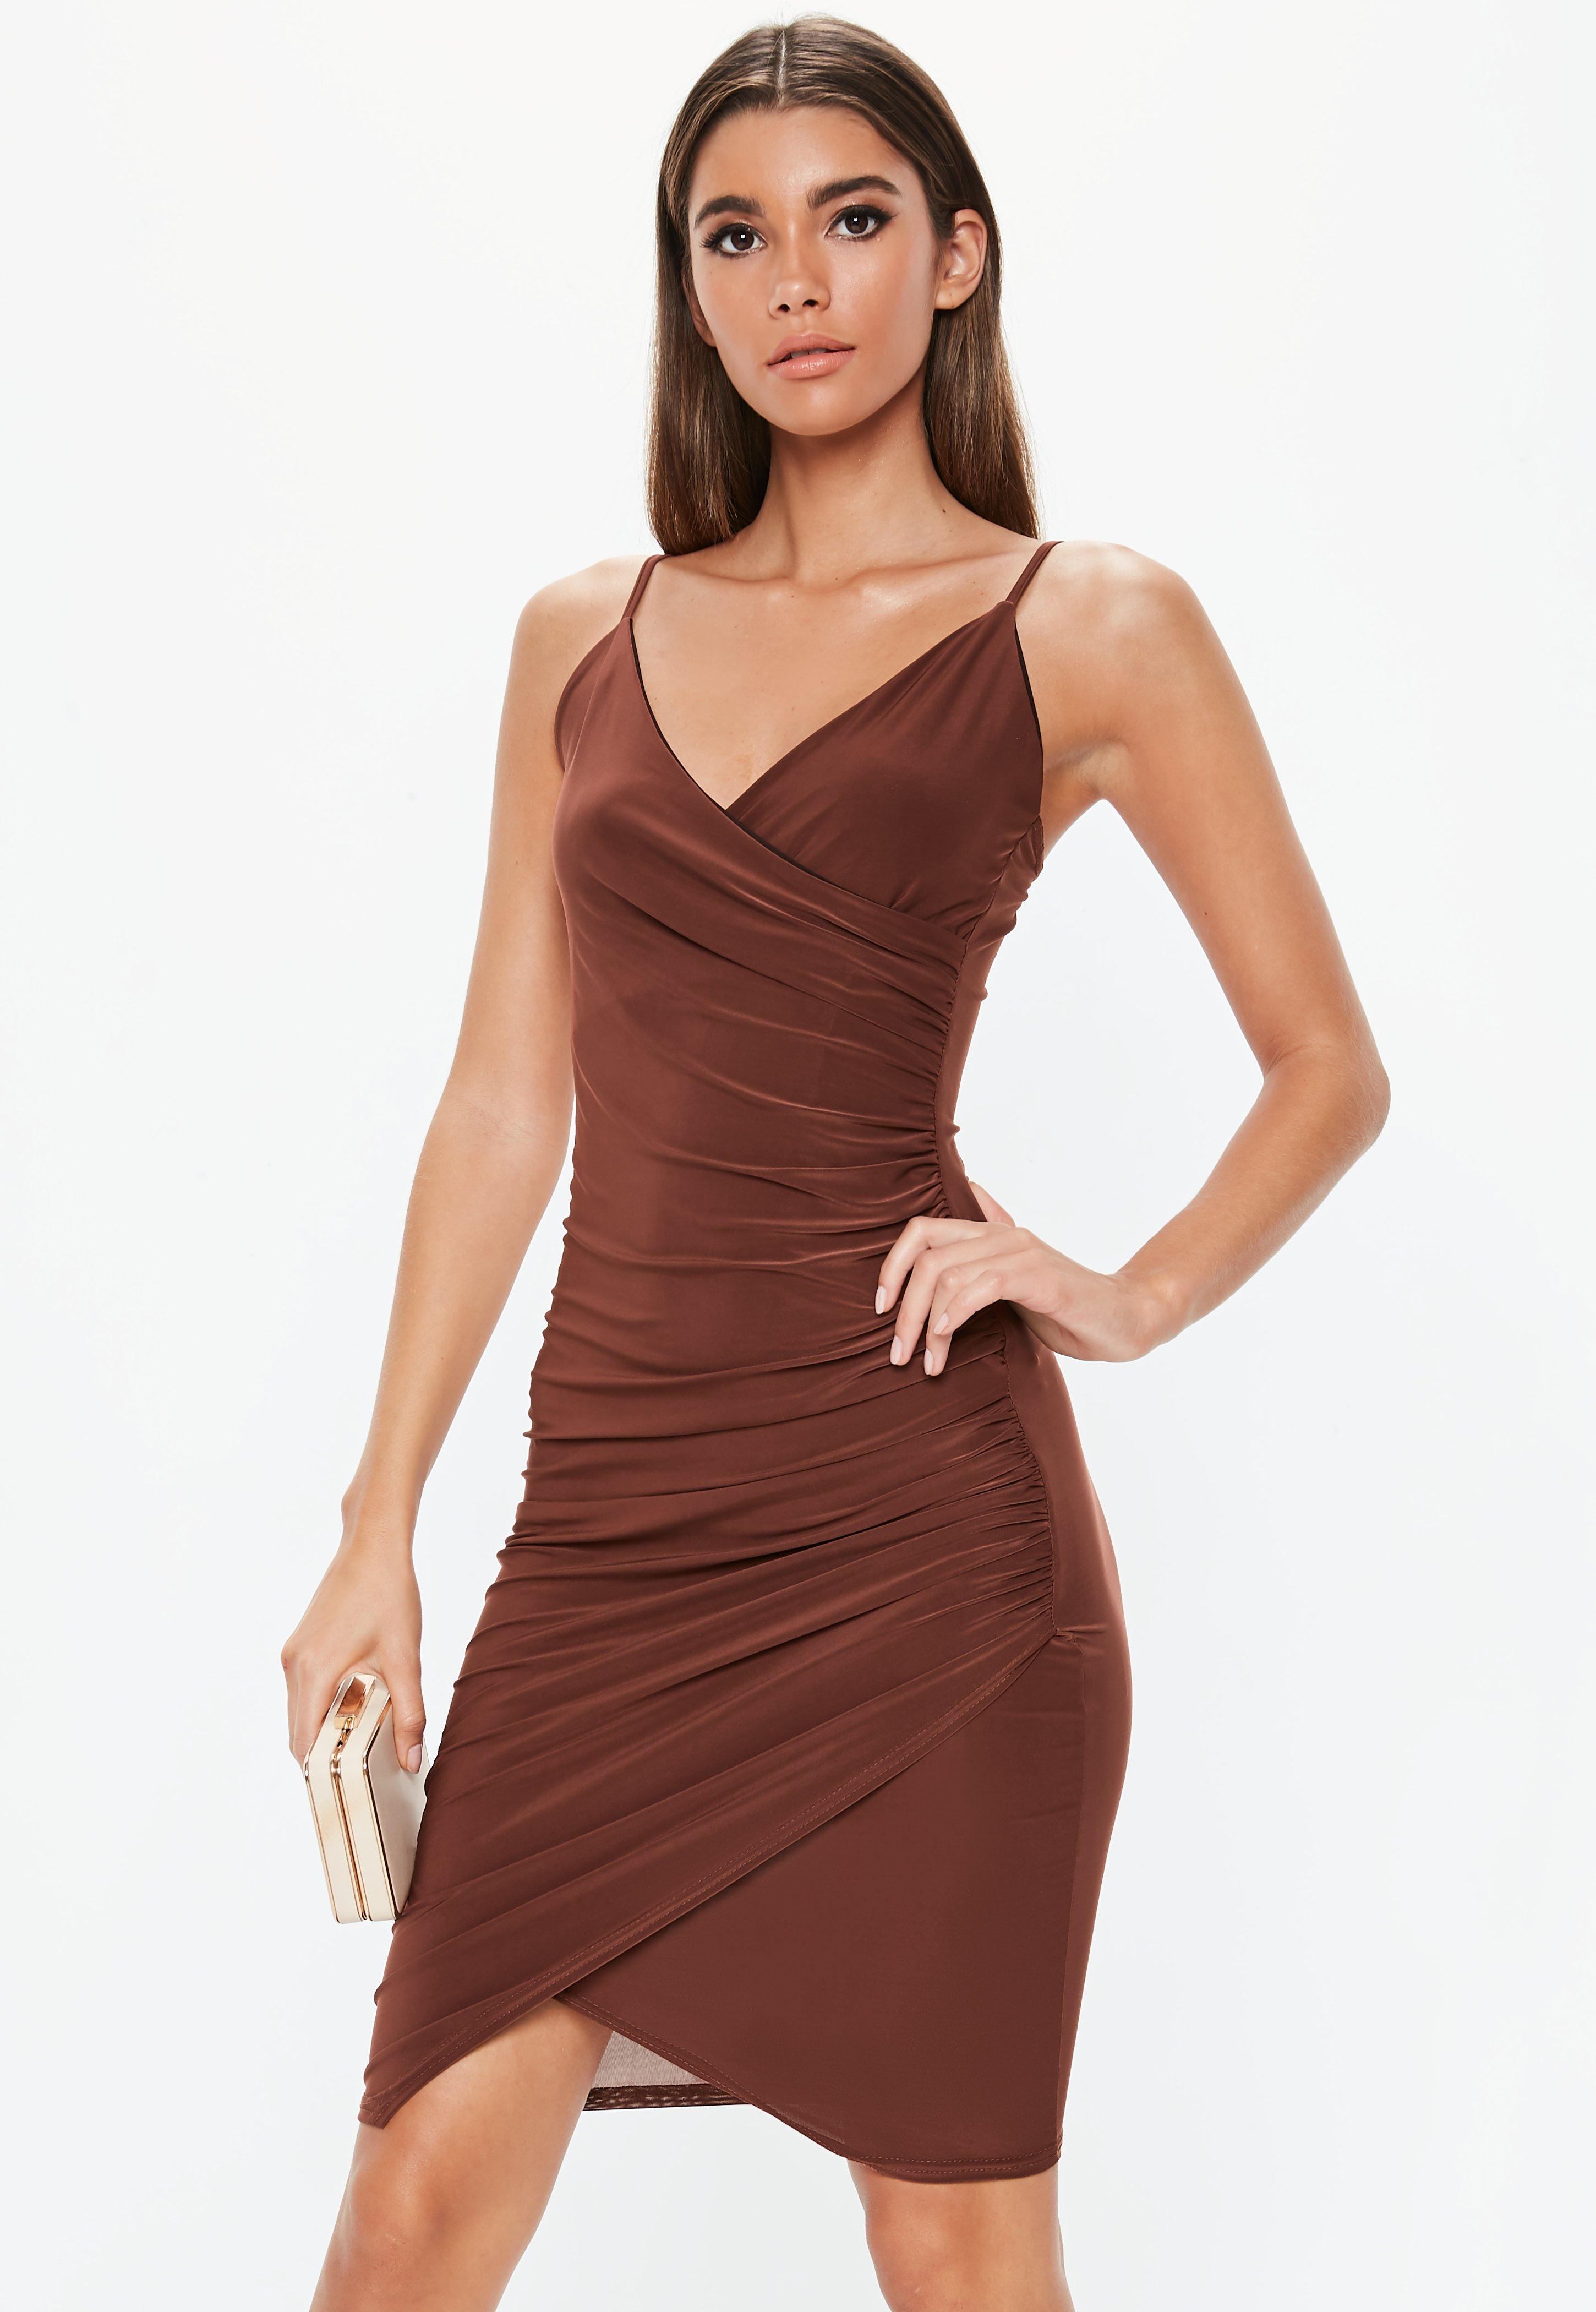 f49d13dc852 Missguided - Brown Chocolate Strappy Slinky Wrap Midi Dress - Lyst. View  fullscreen